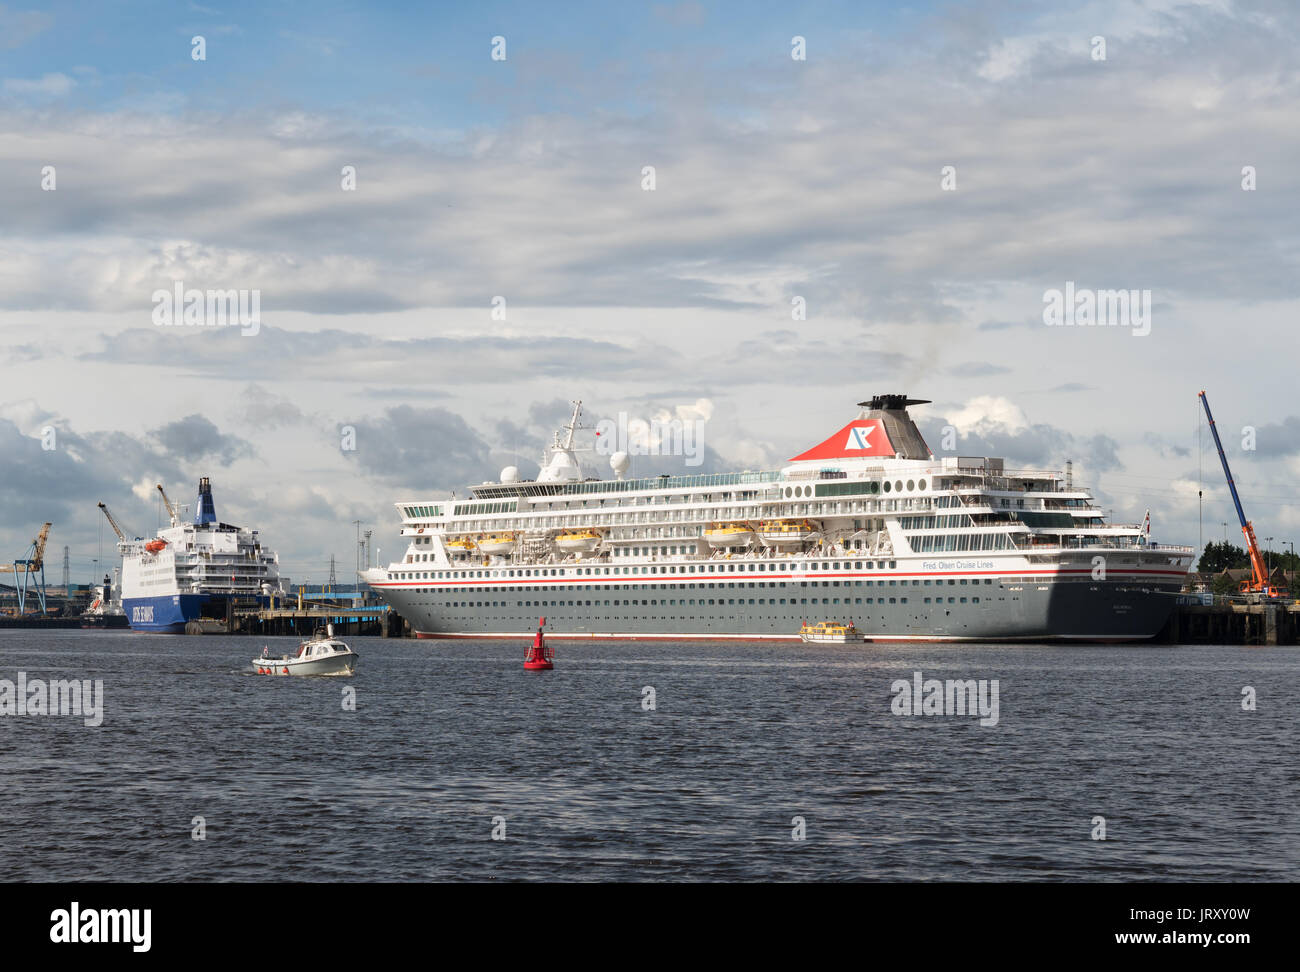 fred-olsen-cruise-lines-ship-balmoral-be